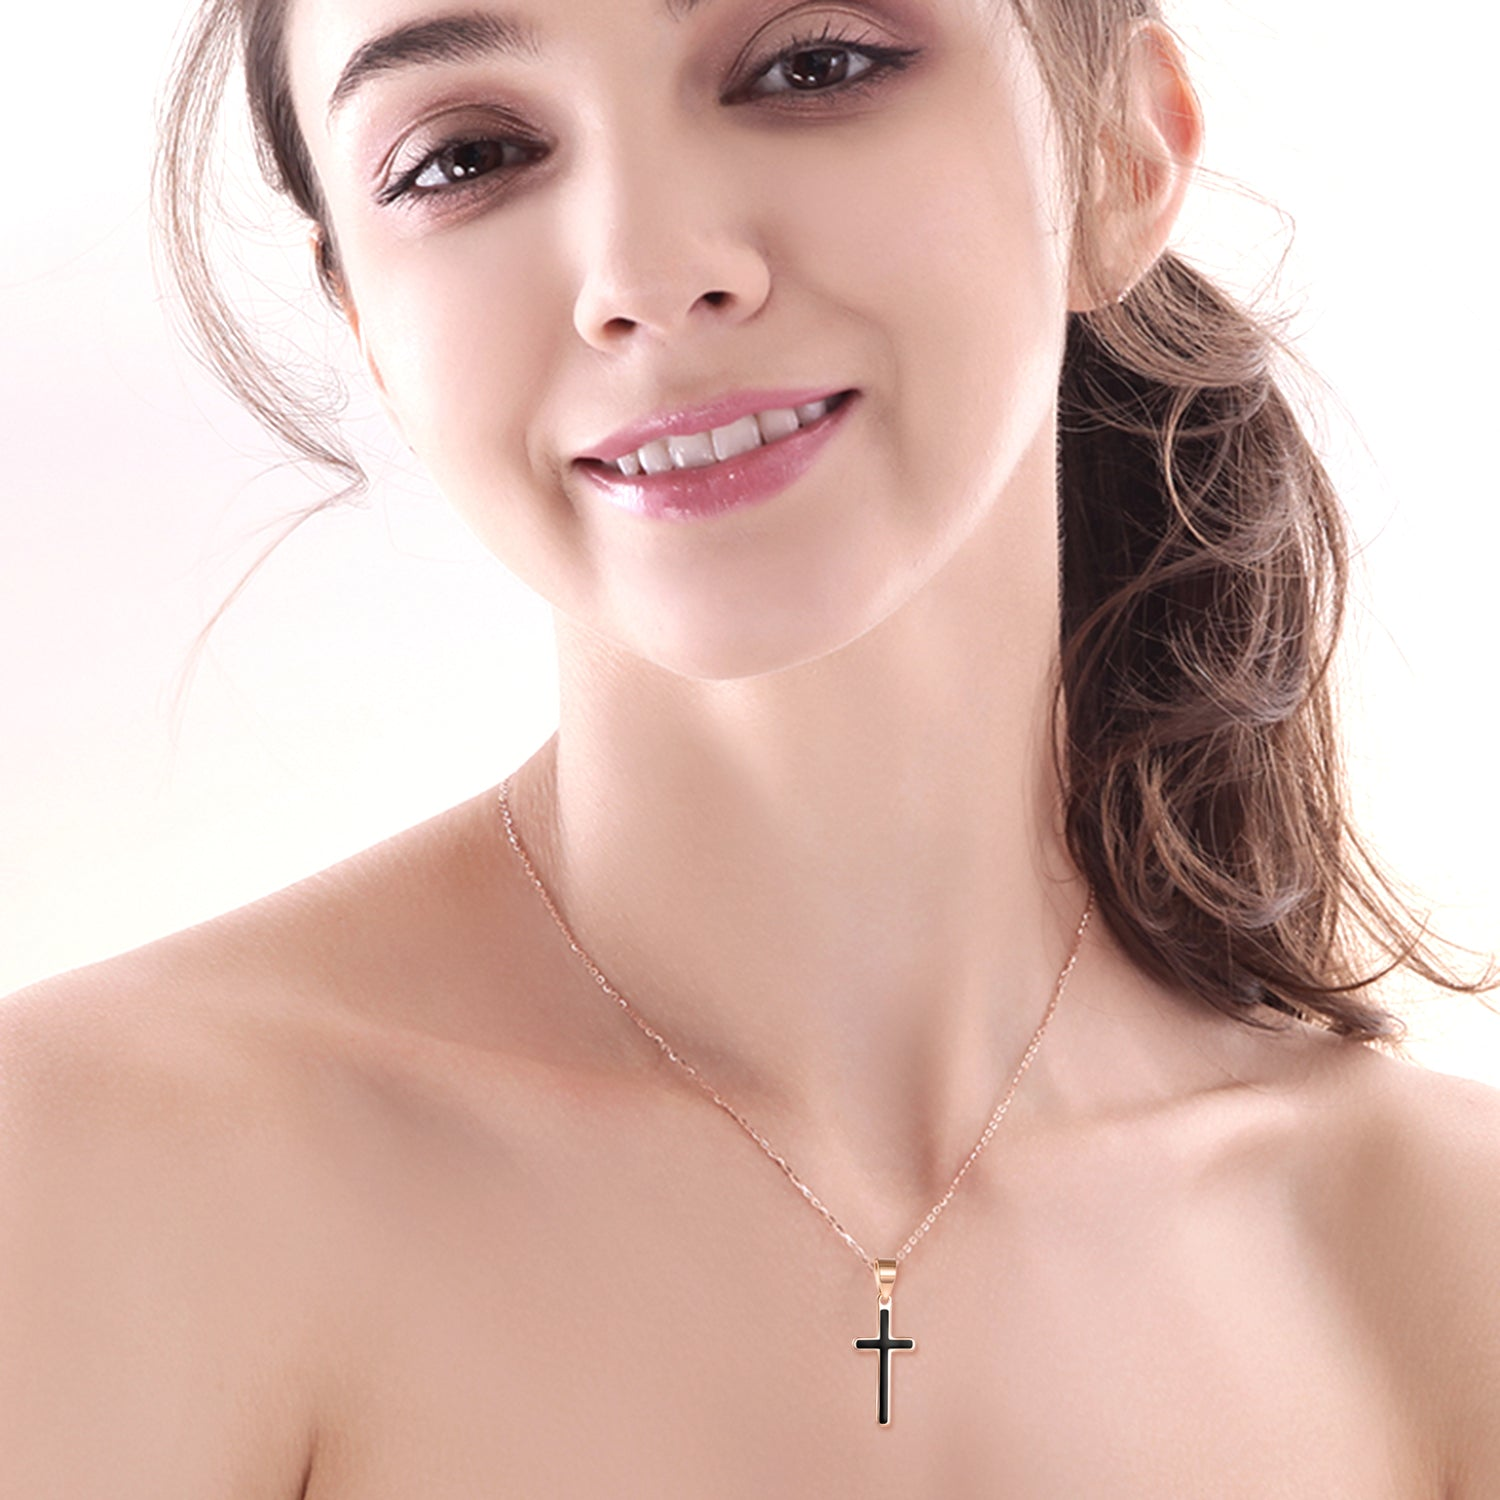 18K Gold Christmas Ornaments Drip Cross Necklace Europe And America Hot Women Models